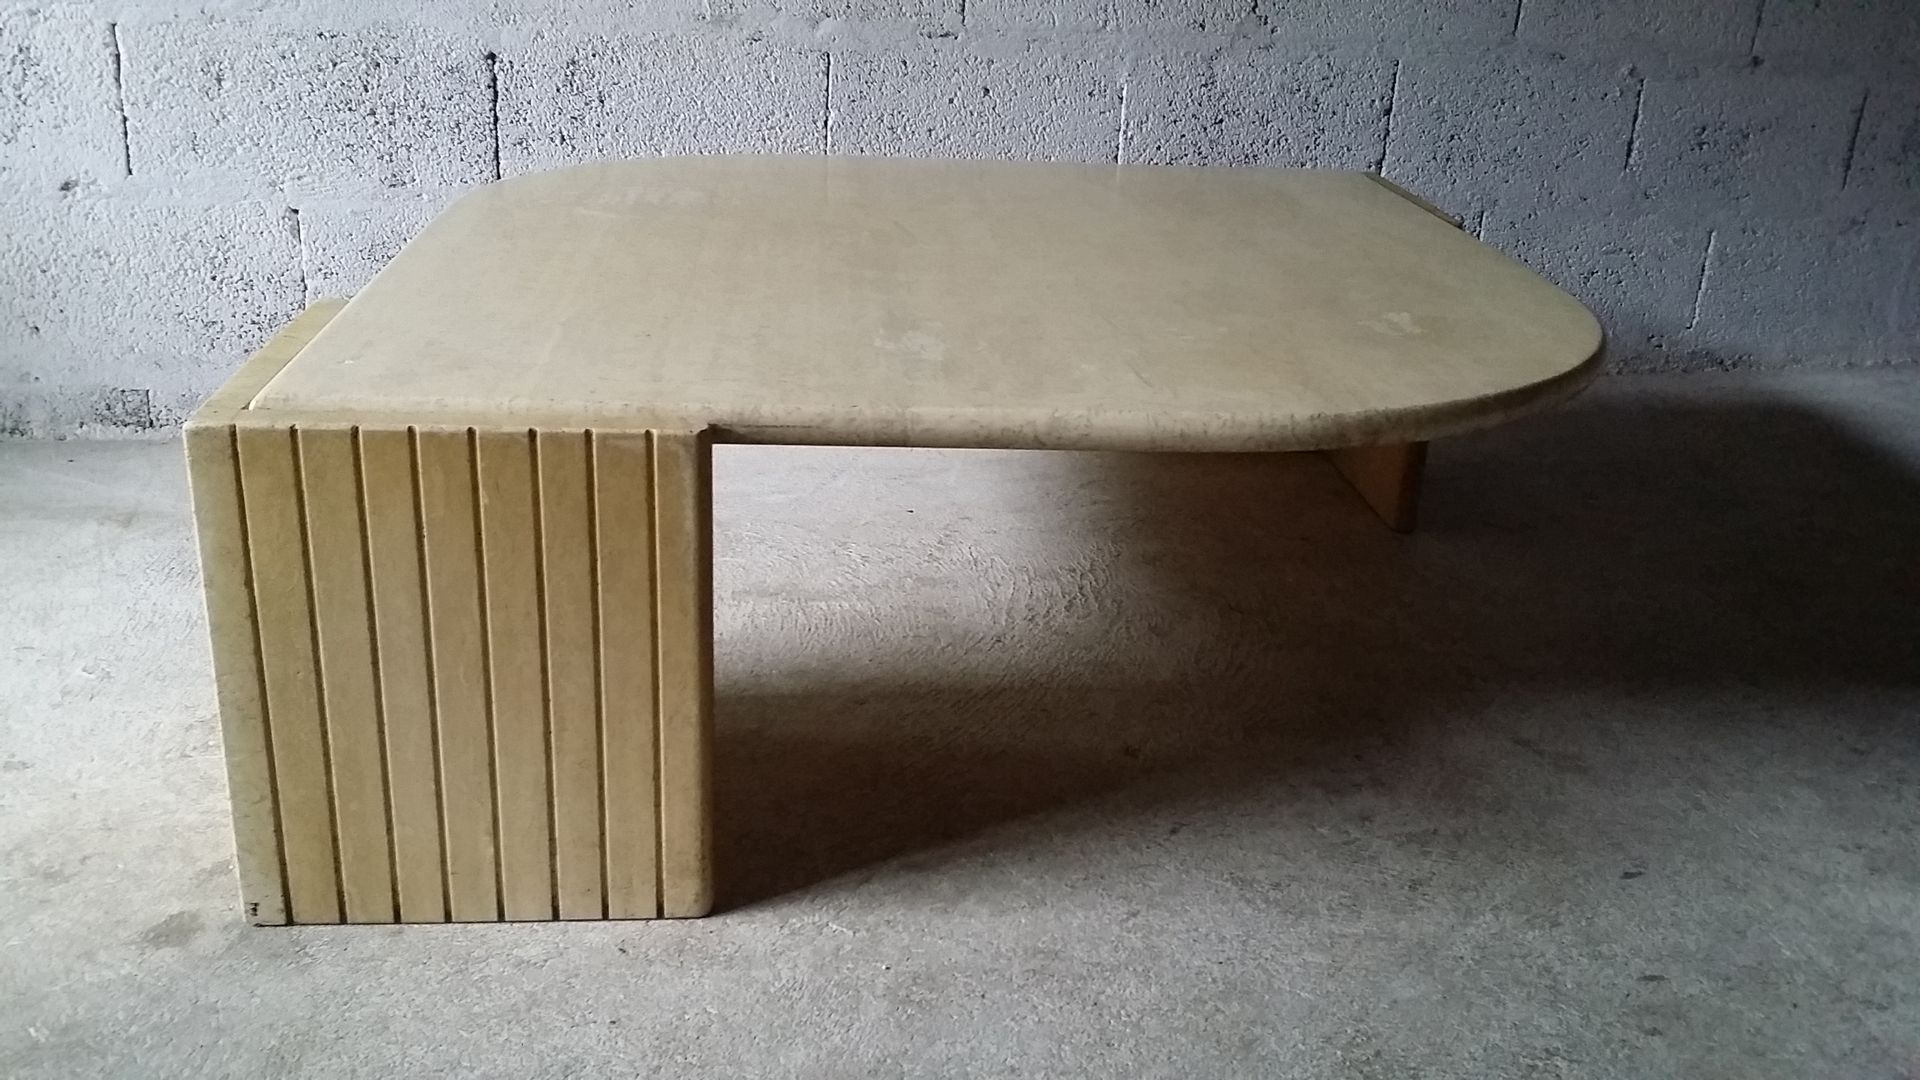 Vintage travertine coffee table from roche bobois 1970s for sale vintage travertine coffee table from roche bobois 1970s for sale at pamono geotapseo Image collections